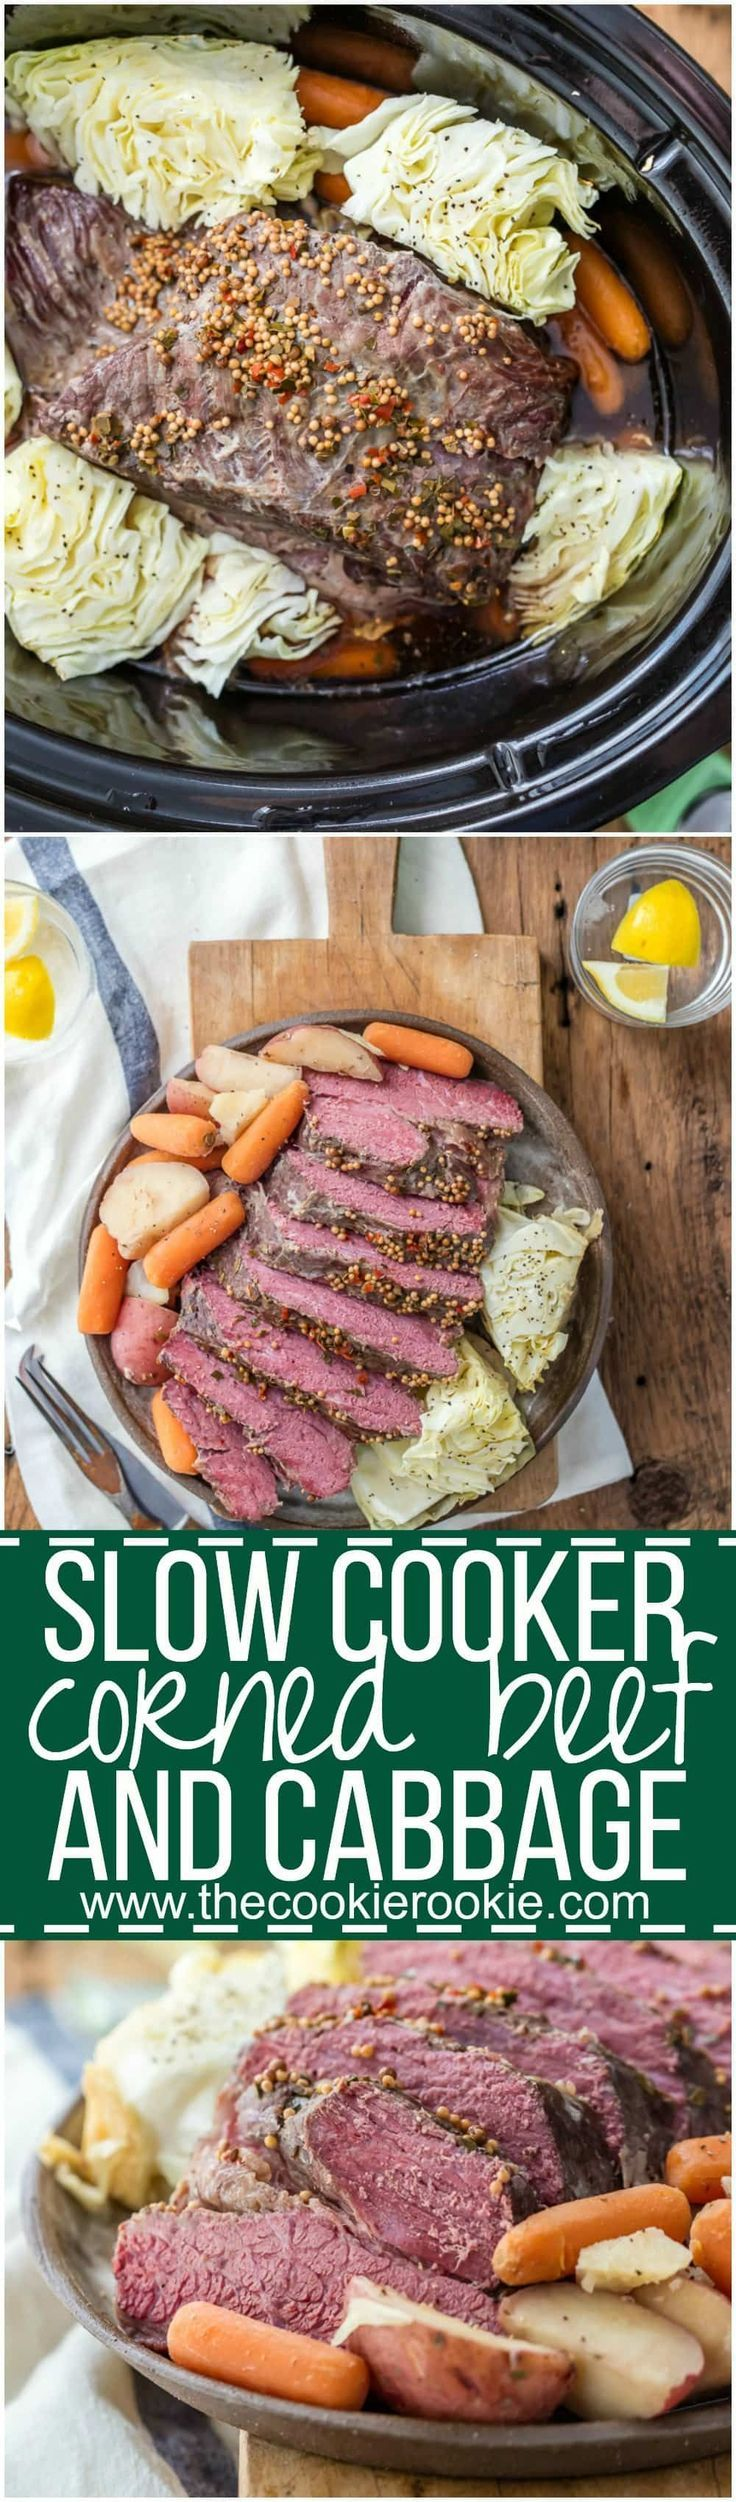 Crock Pot Corned Beef and Cabbage is a MUST MAKE St. Patrick's Day recipe! Slow Cooker Traditional Corned Beef and Cabbage is easy, juicy, tender, and an entire meal in one pot. I can't get enough of those potatoes and carrots in that sauce! My favorite Irish recipe. via @beckygallhardin #cornedbeef #stpatricksday #cornedbeefandcabbage #thecookierookie